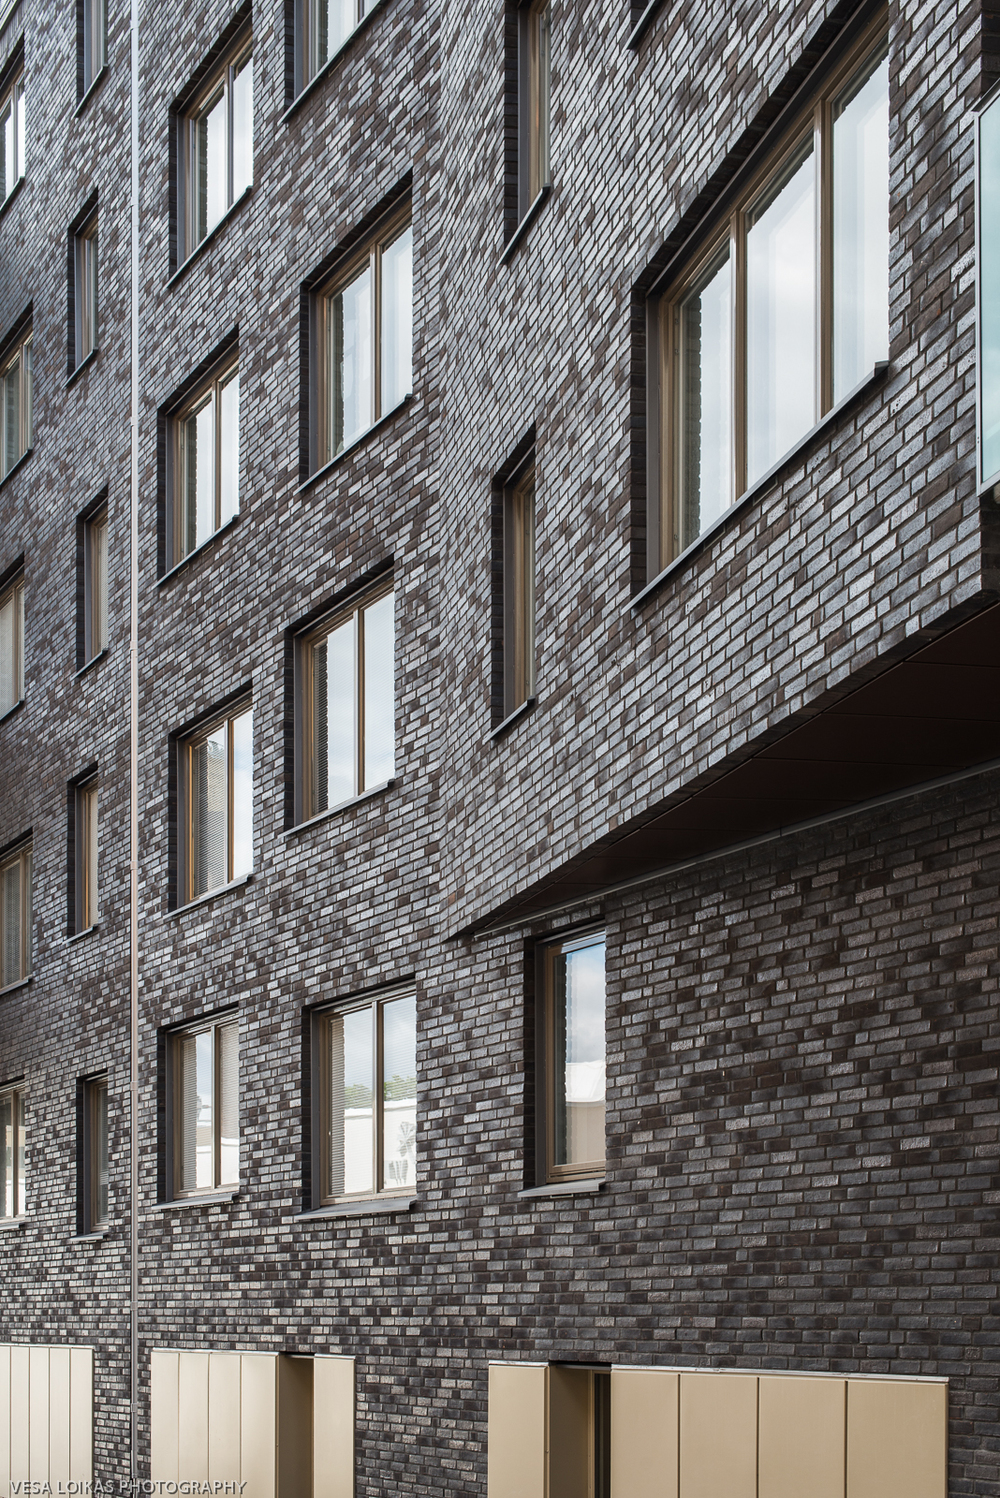 Bricks have been used since circa 5000 BC and are used effedctively in this this residential apartment building facade in south-west of central Stockholm.